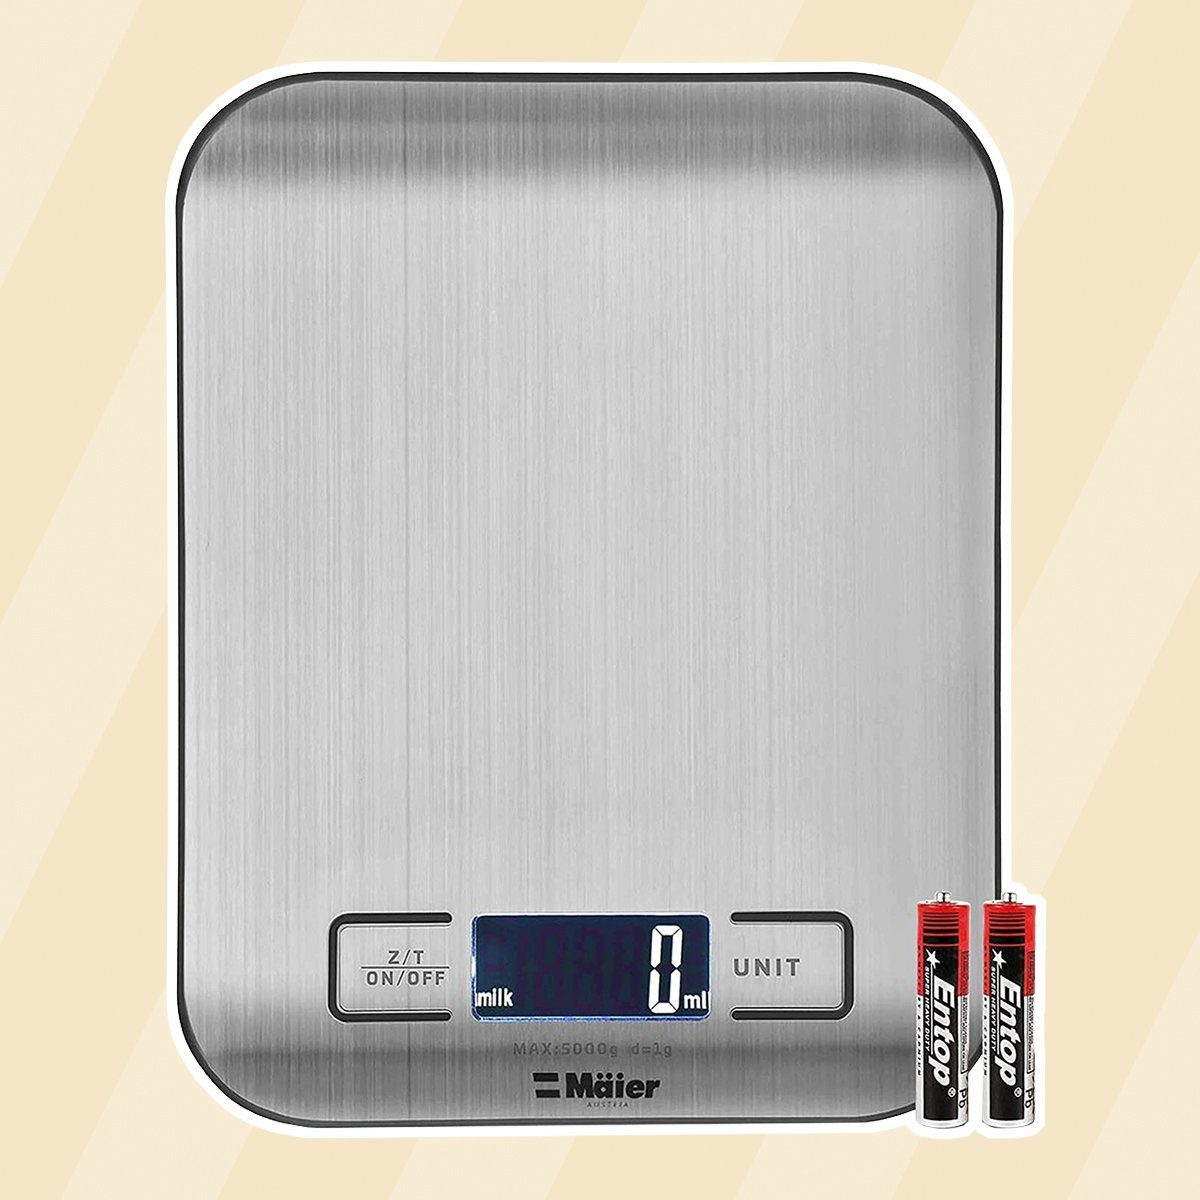 MUELLER Digital Kitchen Mechanical Scale, 30% Greater Accuracy Quad Transducer, Multi-Function Back-Lit LCD, Stainless Steel, 11 lbs, 5 kg (Batteries Included)